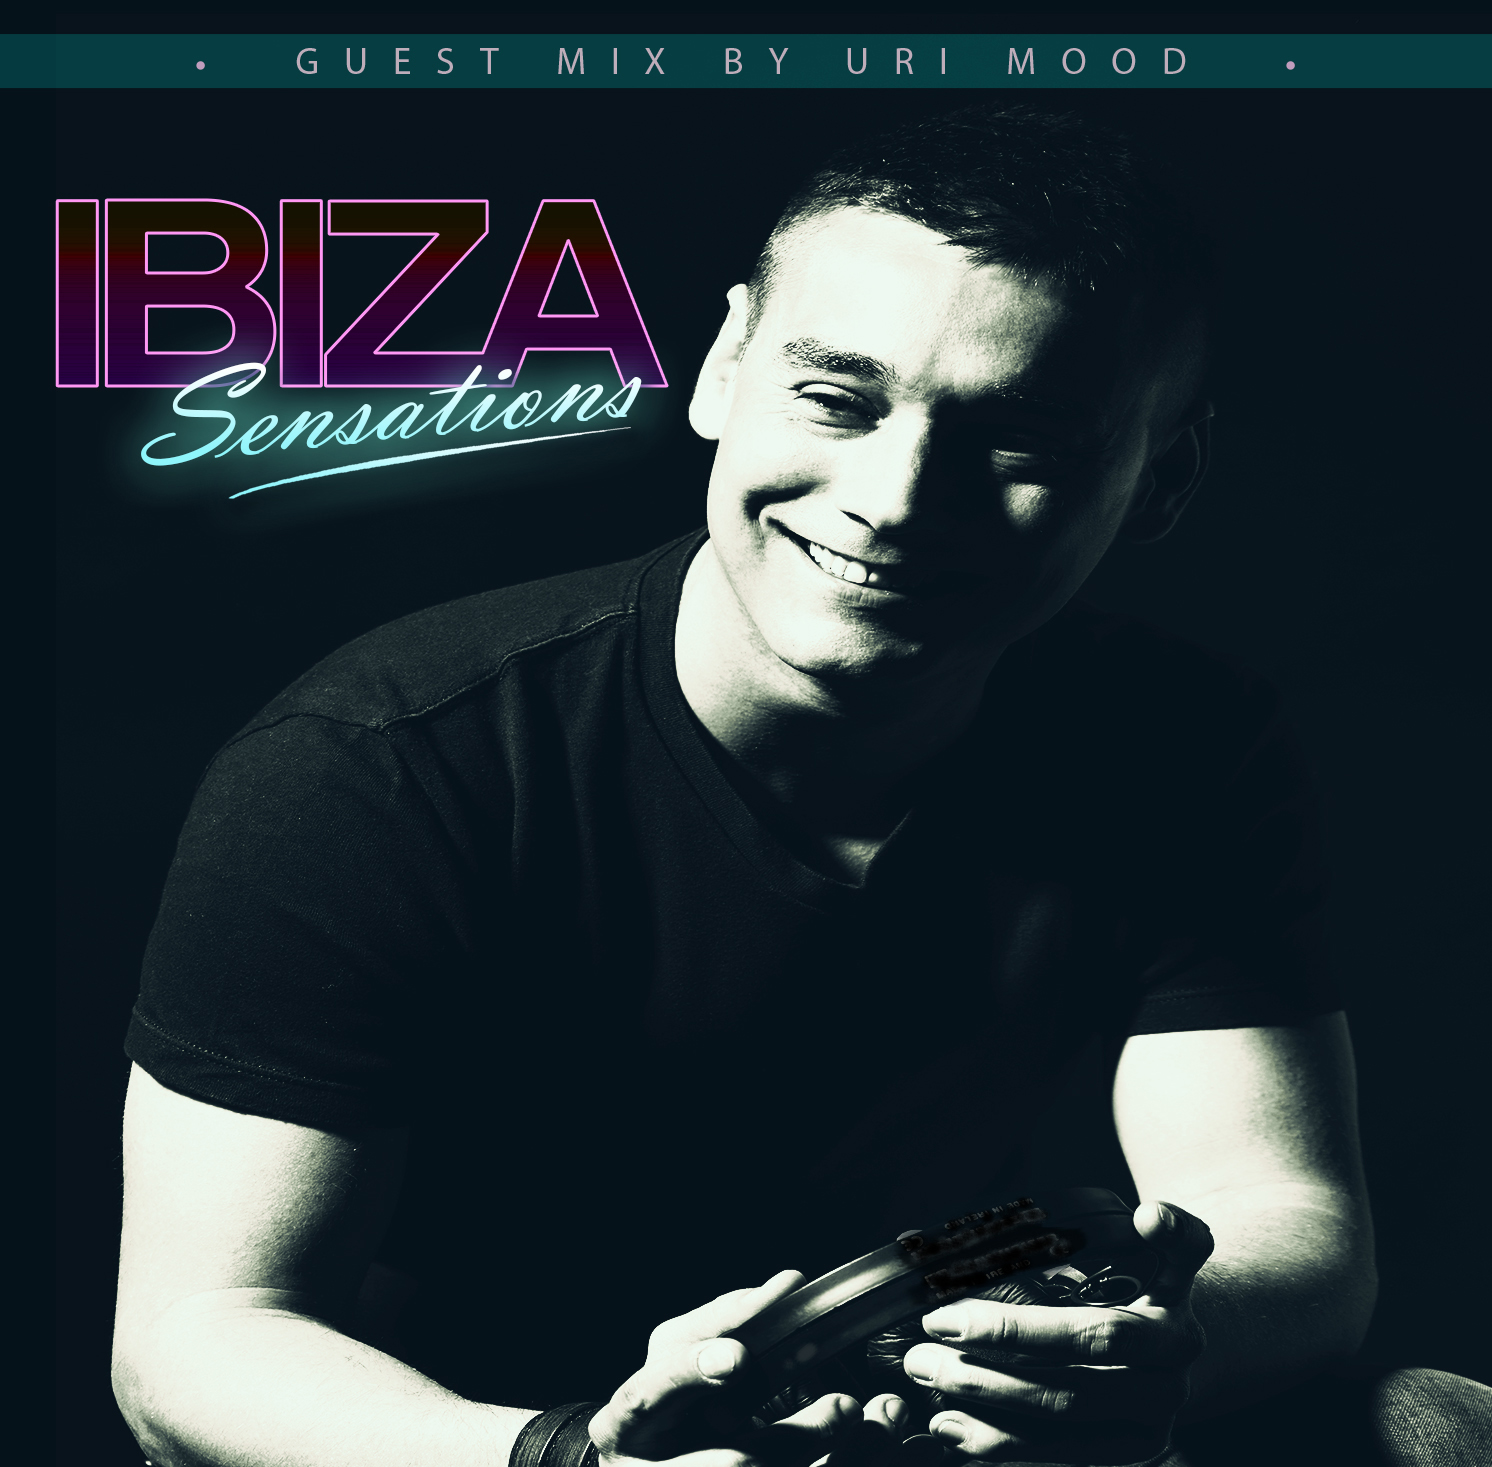 Artwork for Ibiza Sensations 125 Guest Mix by Uri Mood